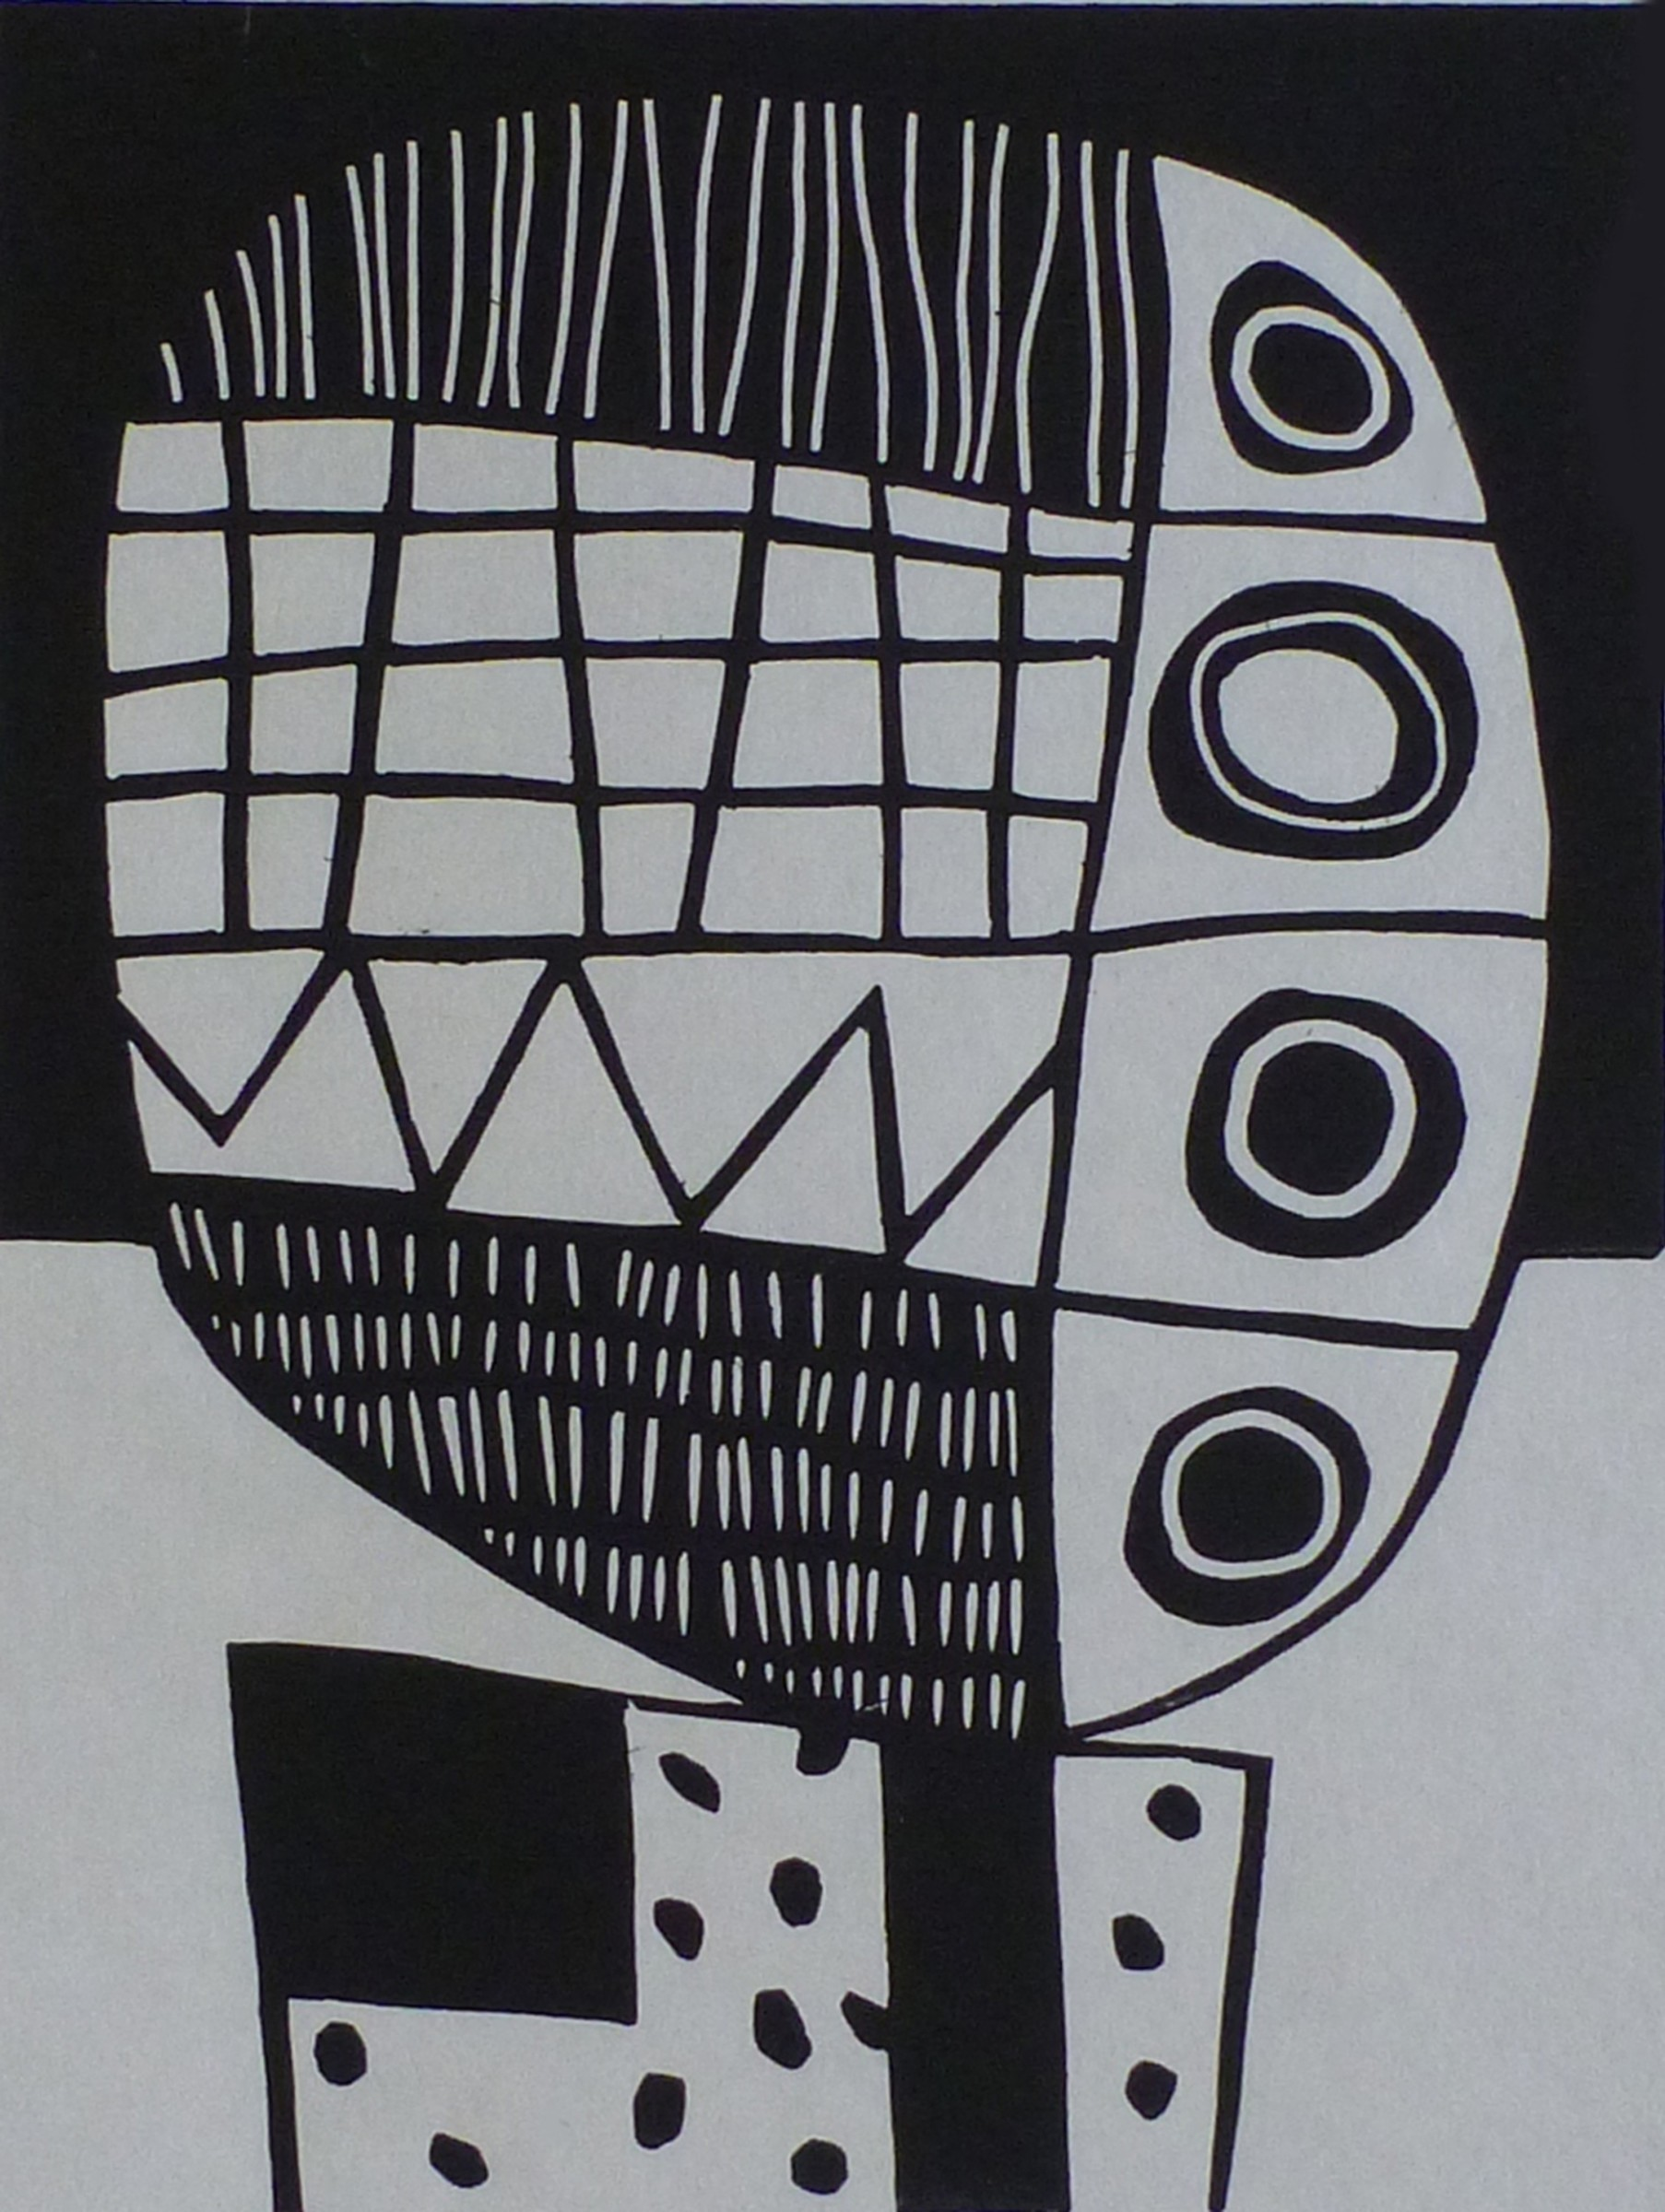 """<span class=""""link fancybox-details-link""""><a href=""""/exhibitions/17/works/image_standalone659/"""">View Detail Page</a></span><p><strong>Julian Davies</strong></p><p>Chatterbox</p><p>linocut, ed of 20</p><p>36 x 31cm</p><p>£150 framed</p><p>£100 unframed</p>"""